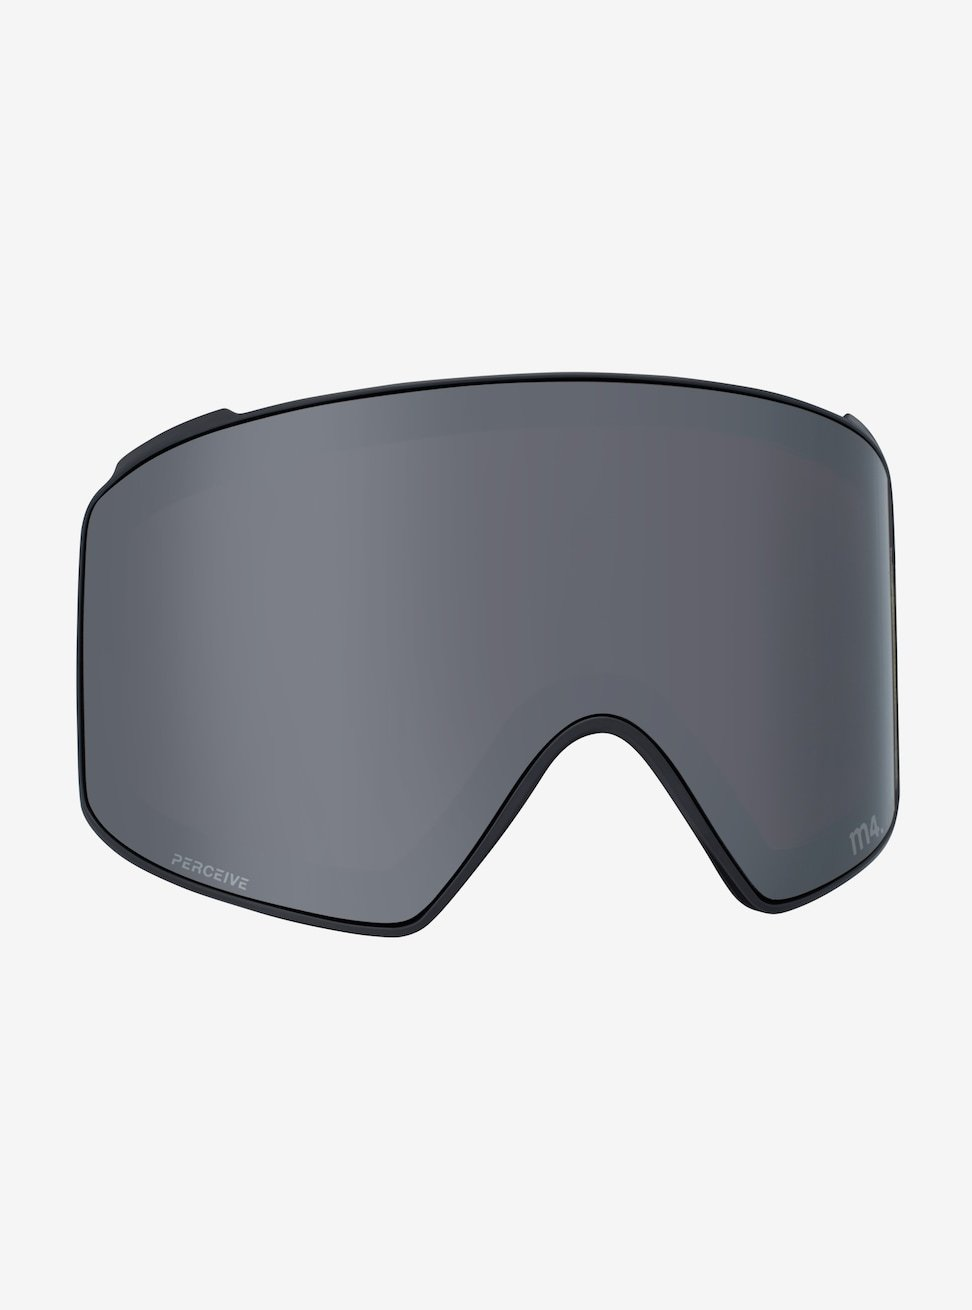 Anon M4 Cylindrical Goggle Lens (Multiple Color Options)